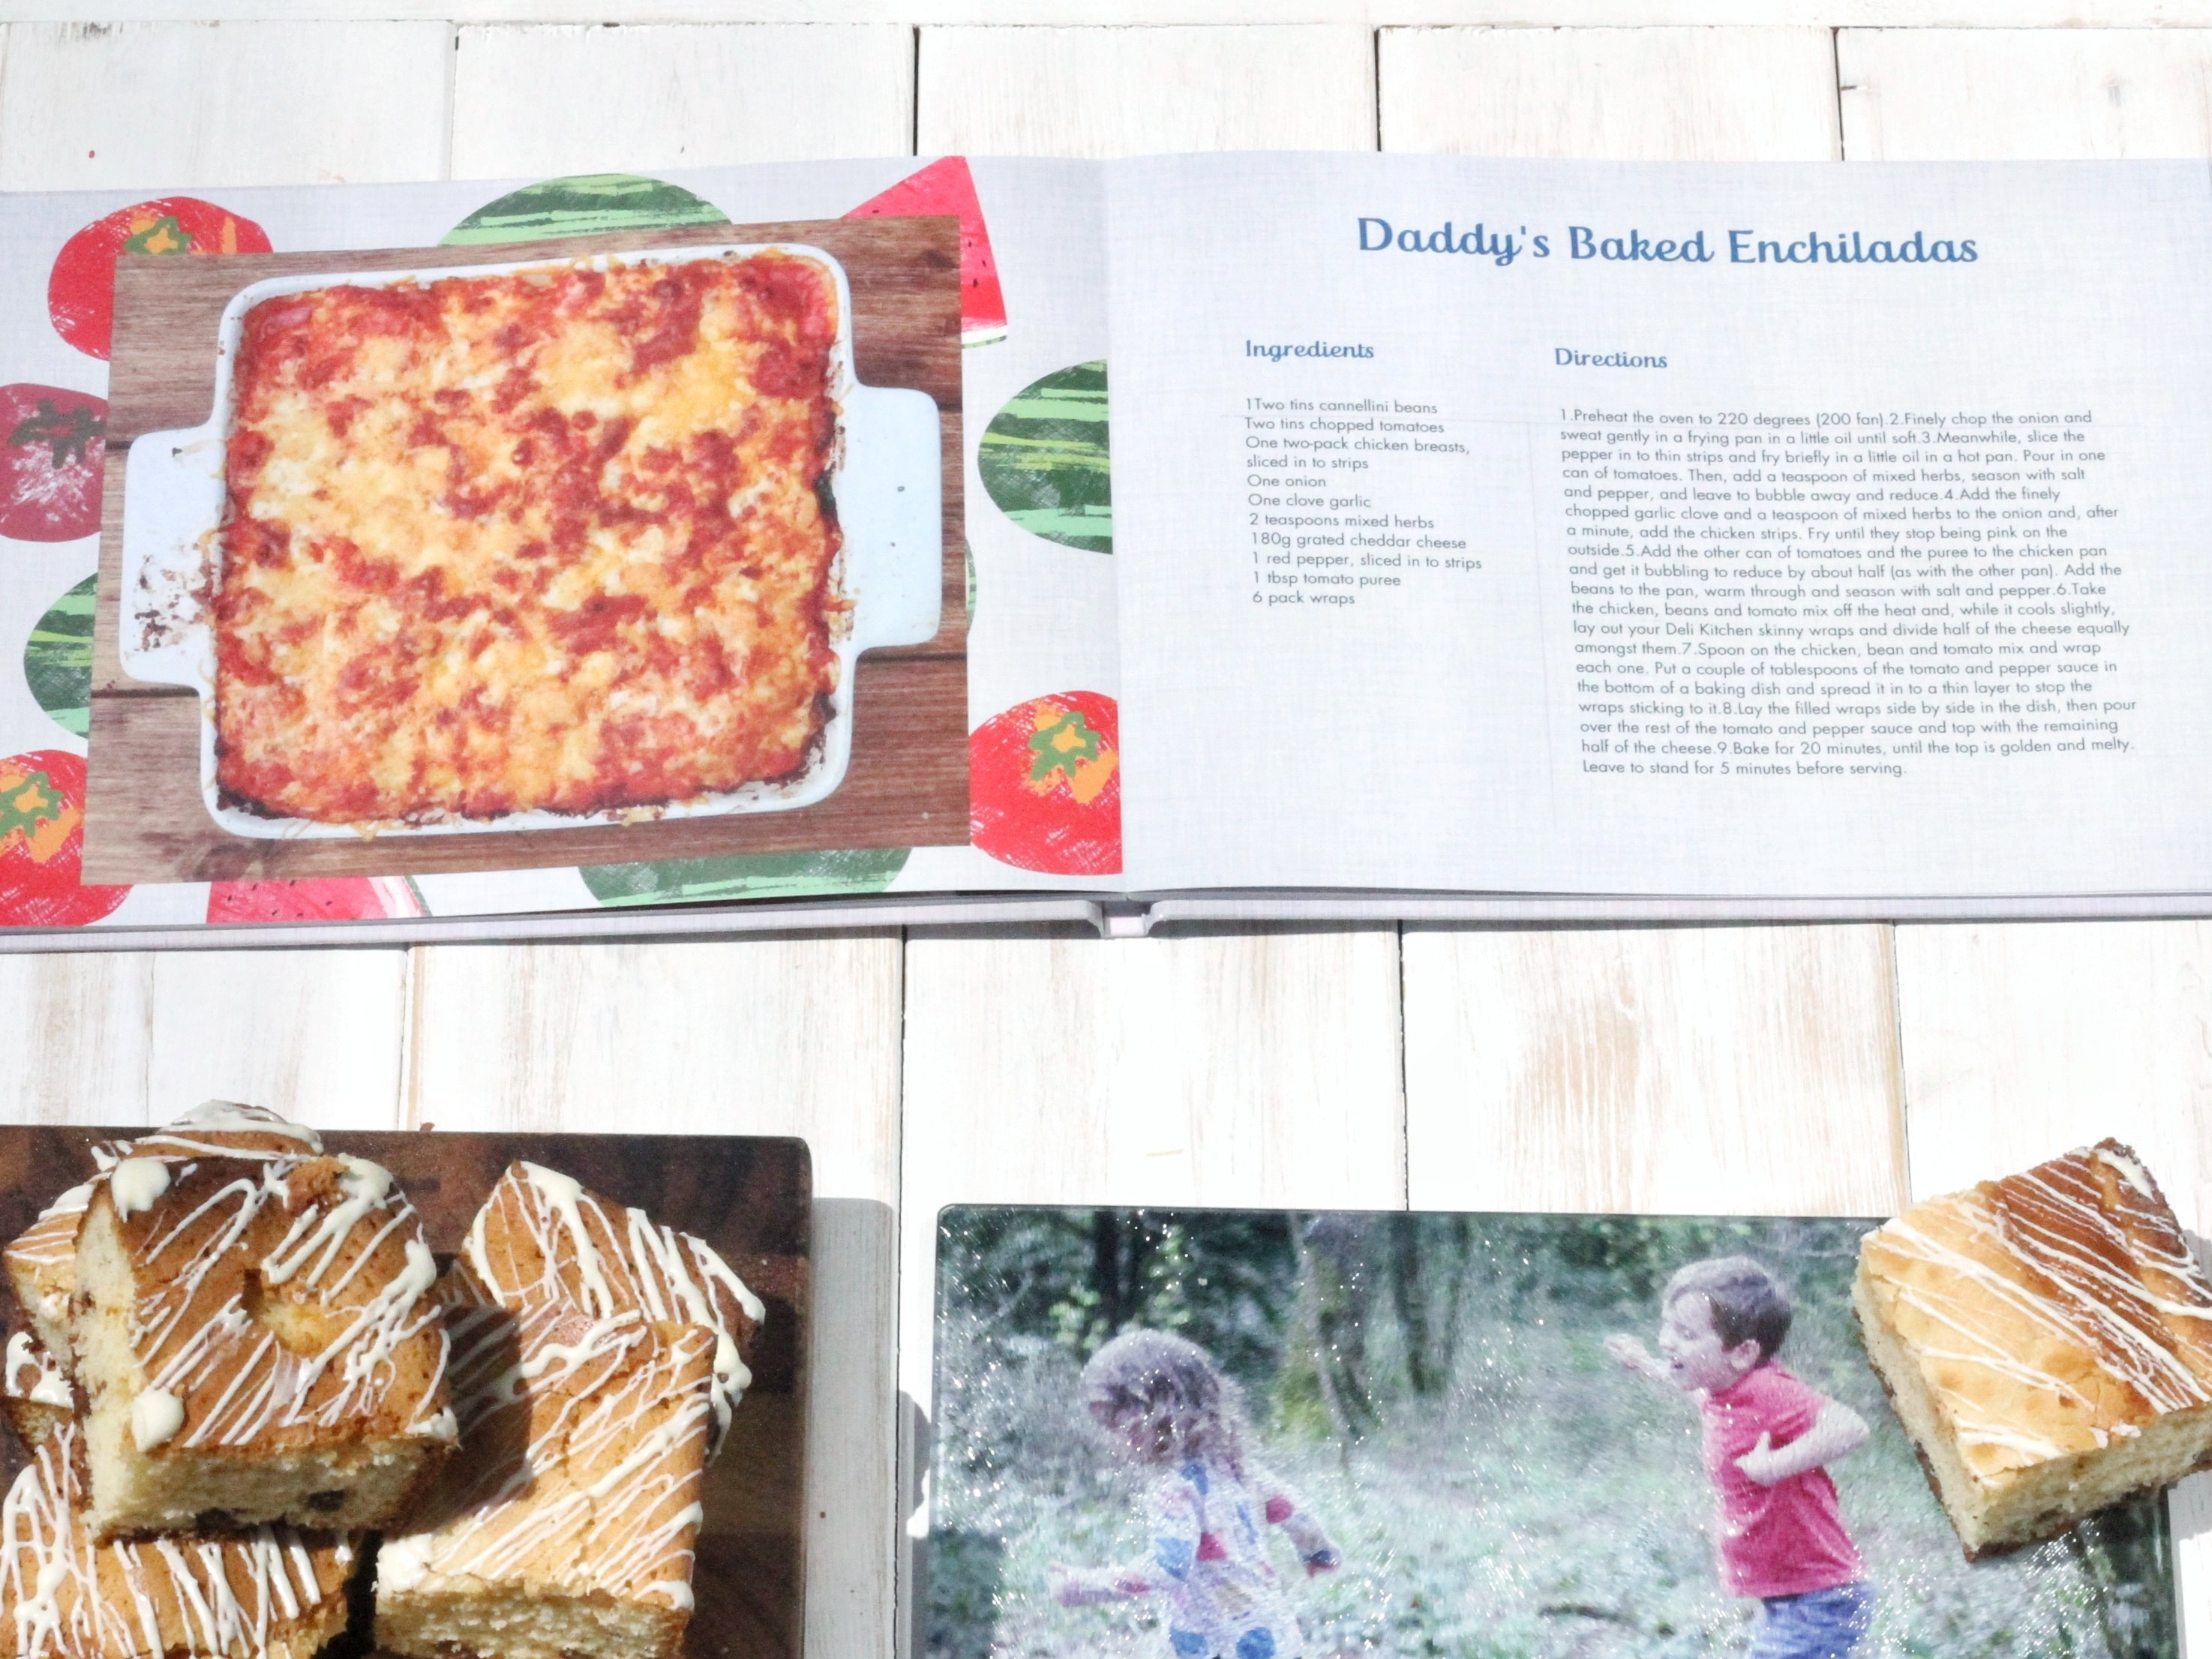 Cookery photo book from snapfish